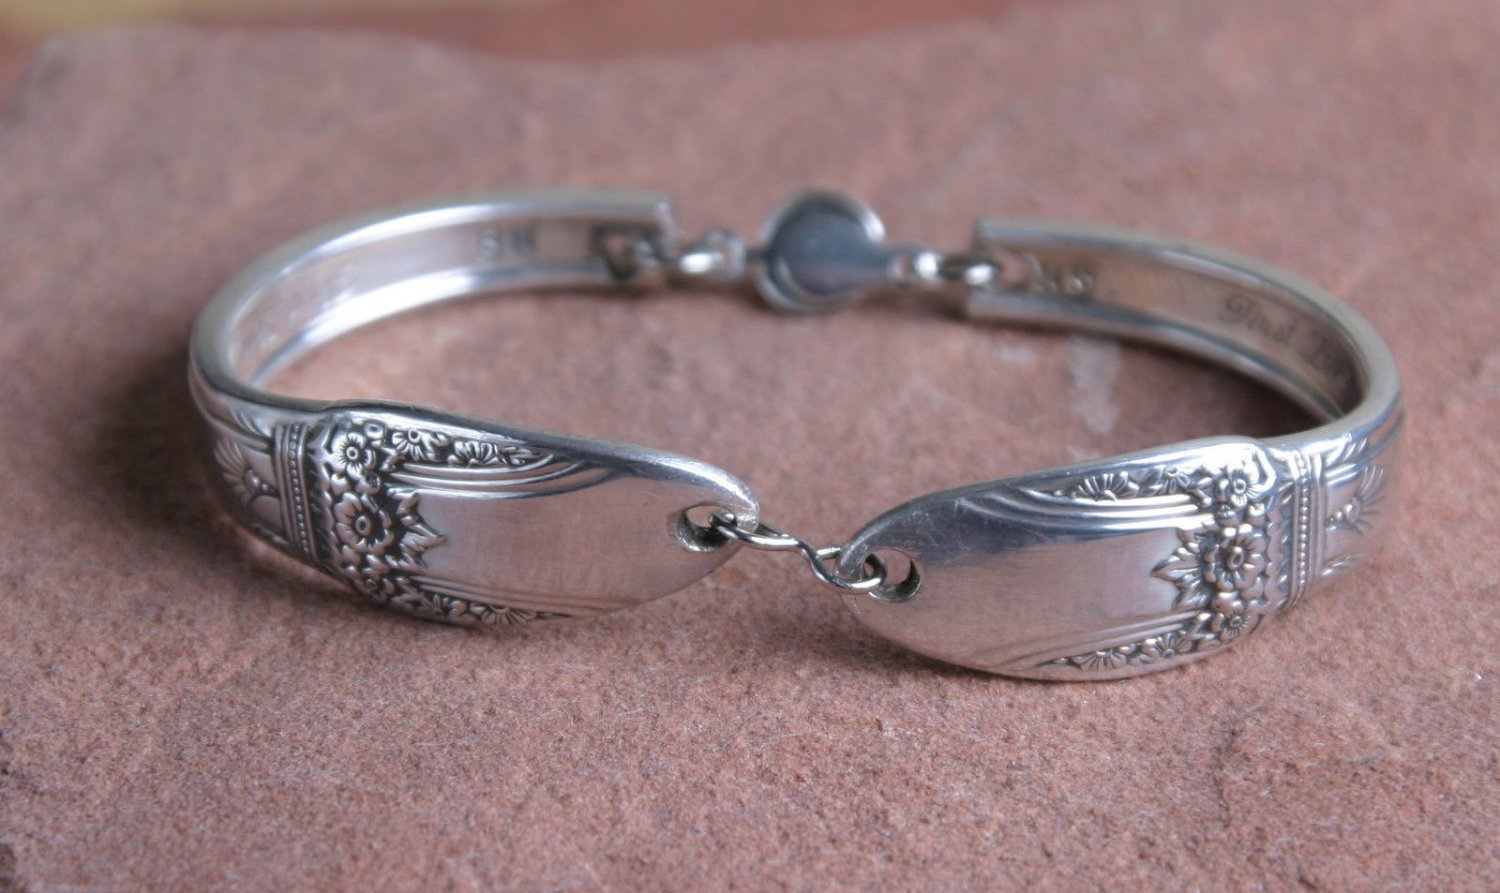 Rodgers 1937 First Love Vintage Silver Plated Silverware Spoon Bracelet # 018